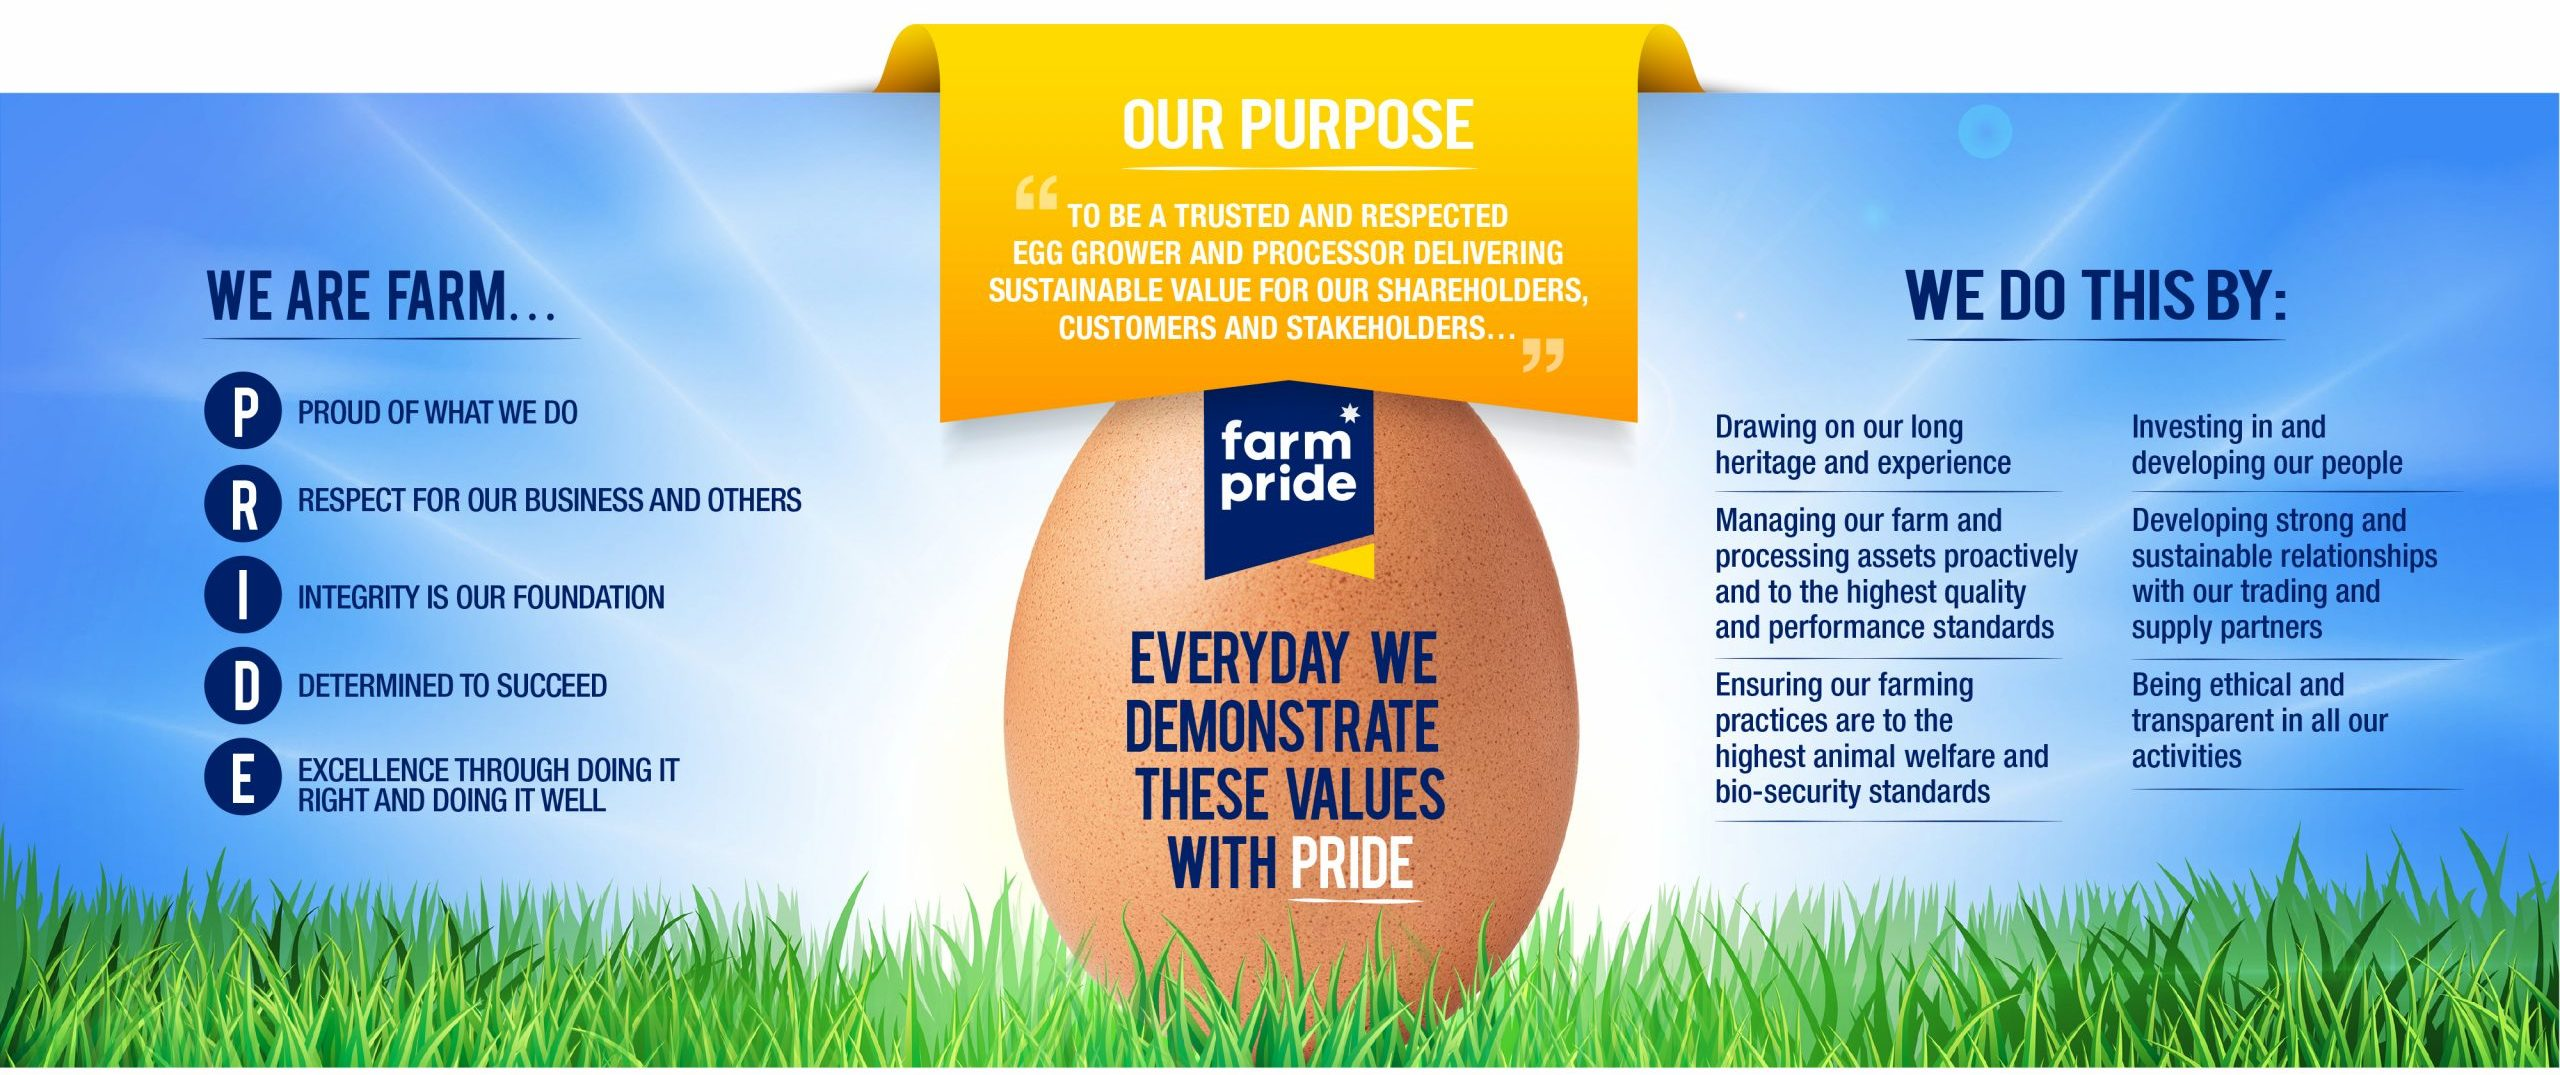 Egg in field with company values